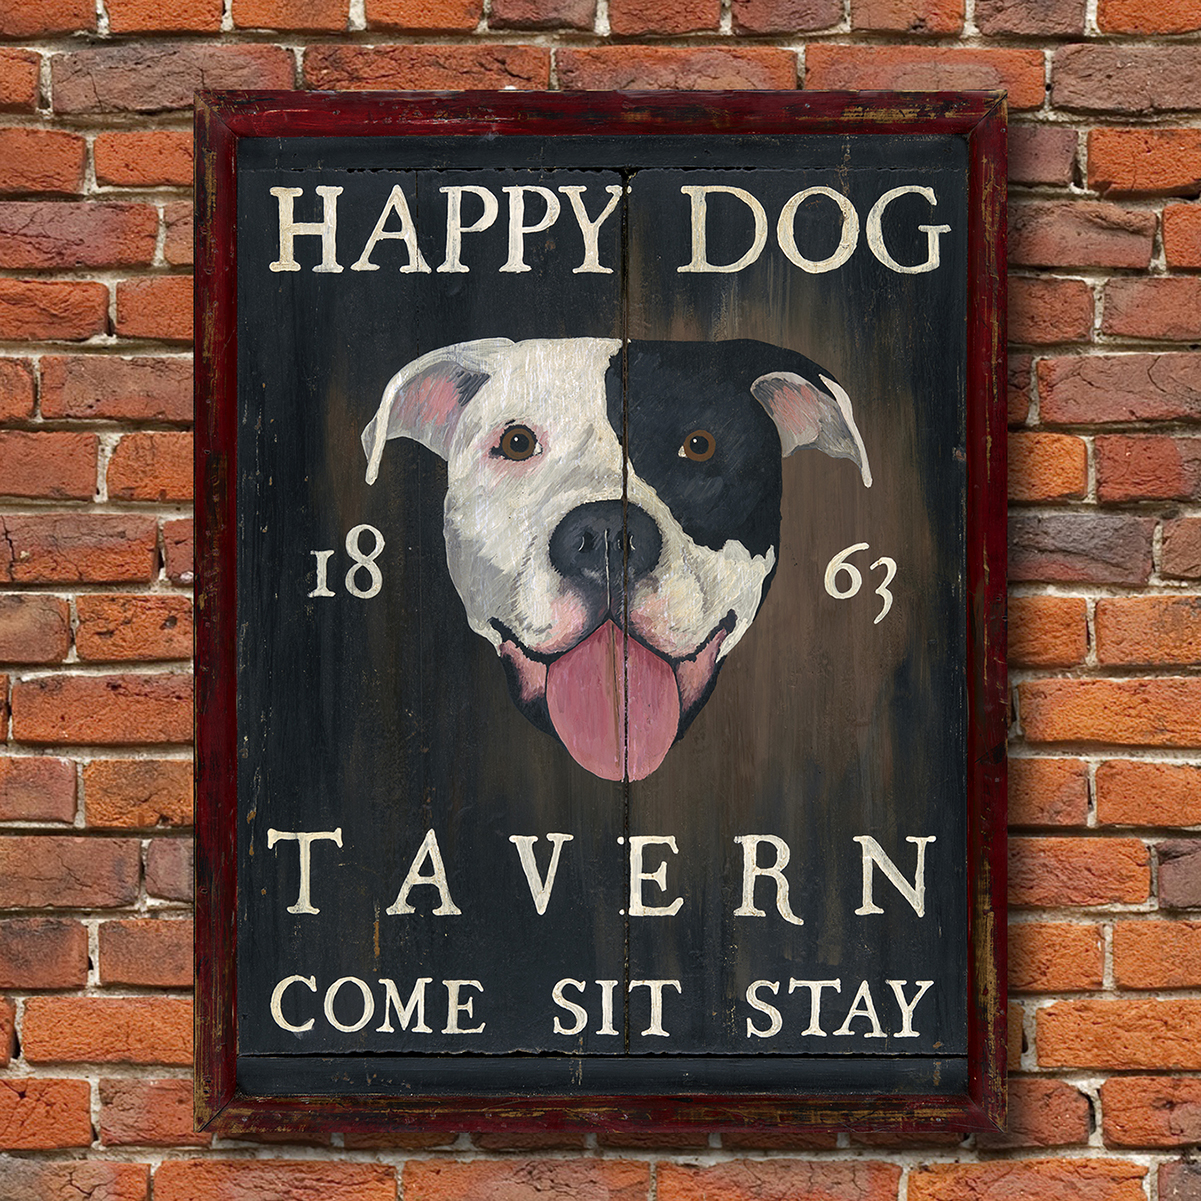 Happy Dog Tavern